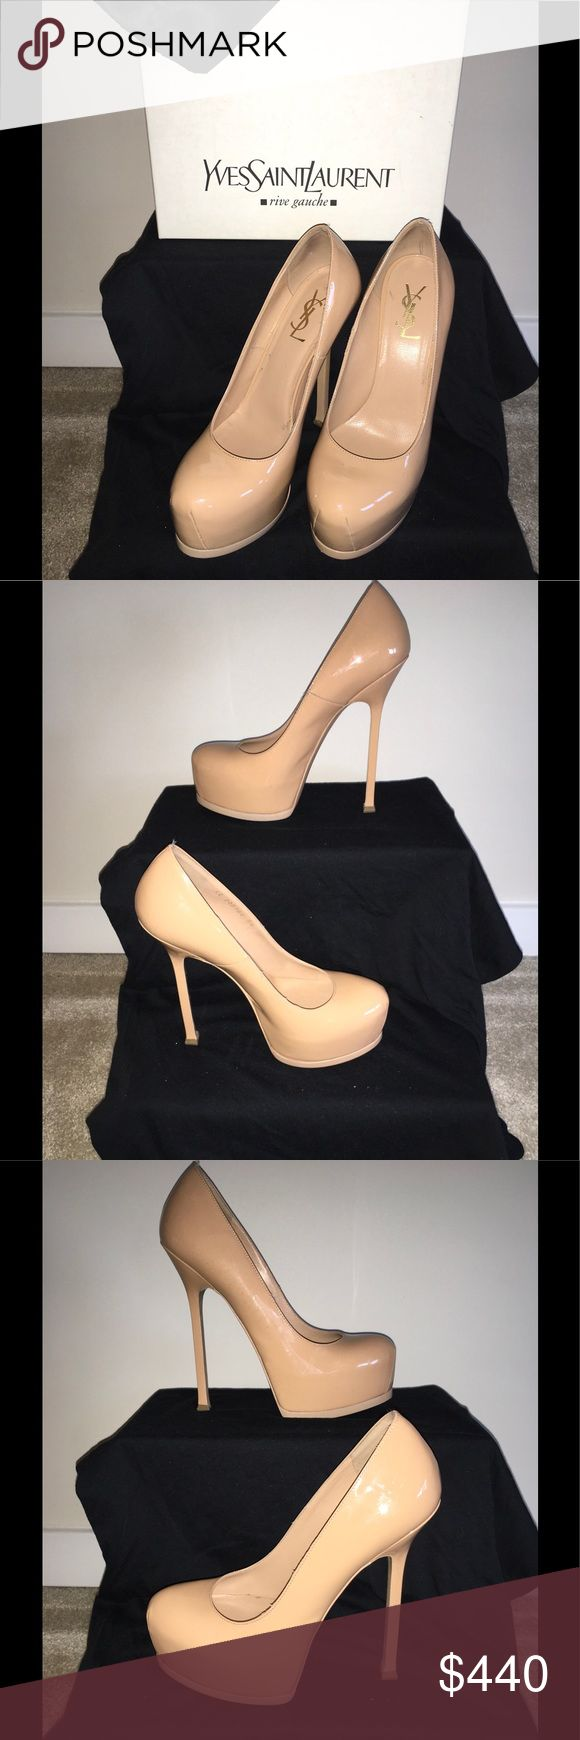 YSL(SAINT LAURENT) HEELS Women's EU38(US 7 1/2-8) WORN ONCE..... Please don't be fooled by the fakes on POSHMARK ....All of our products are GUARANTEED 100% AUTHENTIC, so buy with CONFIDENCE....... CHECK OUT OUR OTHER ITEMS FOR SALE... Saint Laurent Shoes Heels